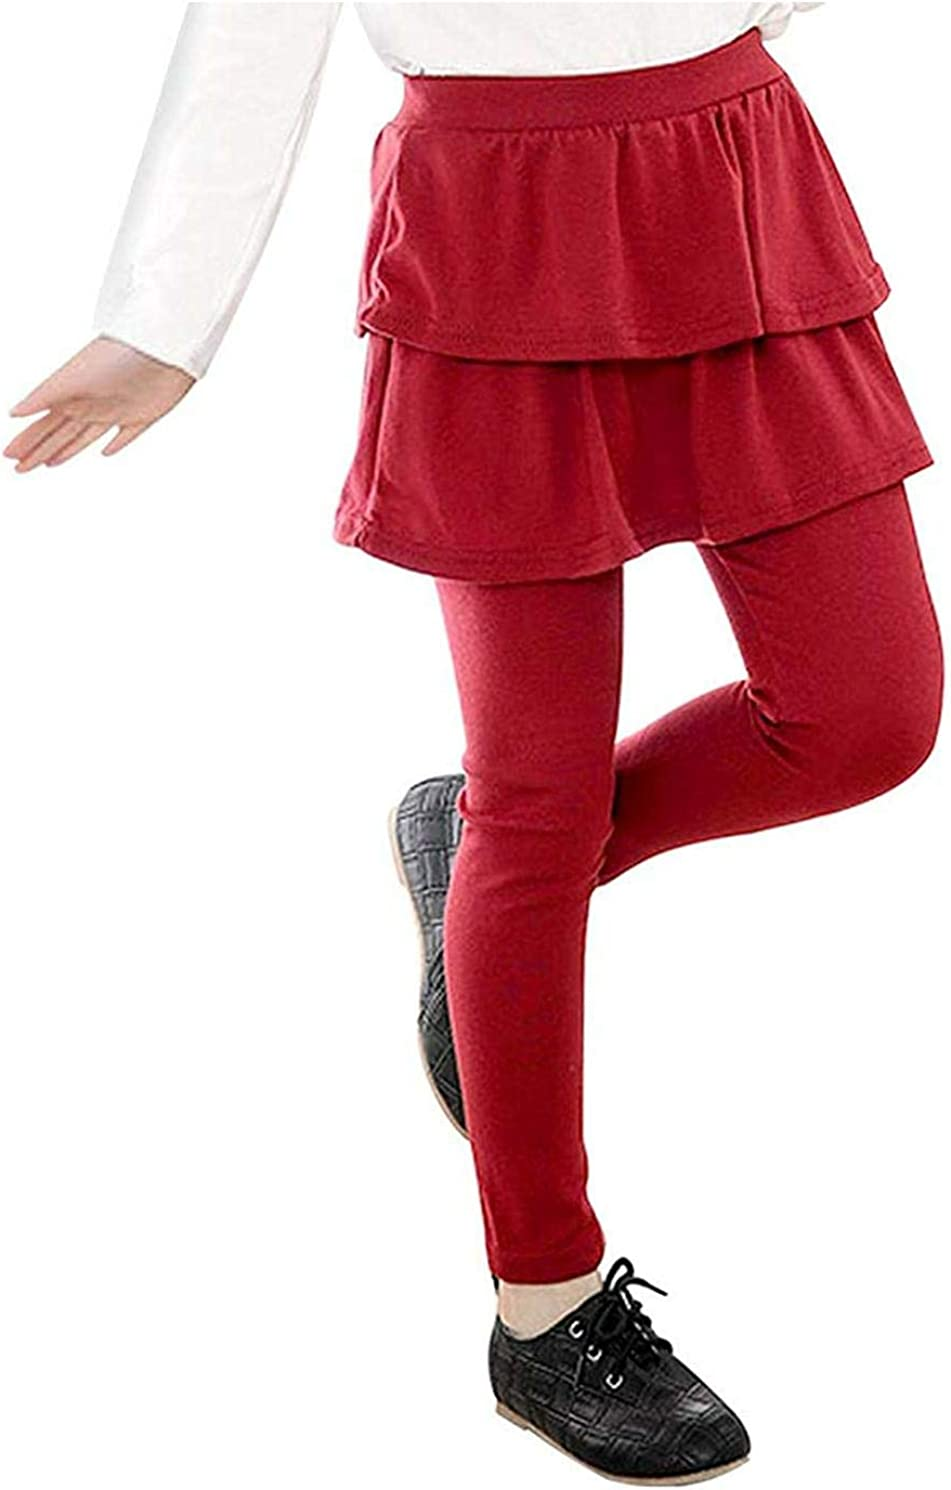 Leggings with Ruffle Tutu Skirt - Stretchy Cotton For Little Girls (3T-7T & 6 Colors)